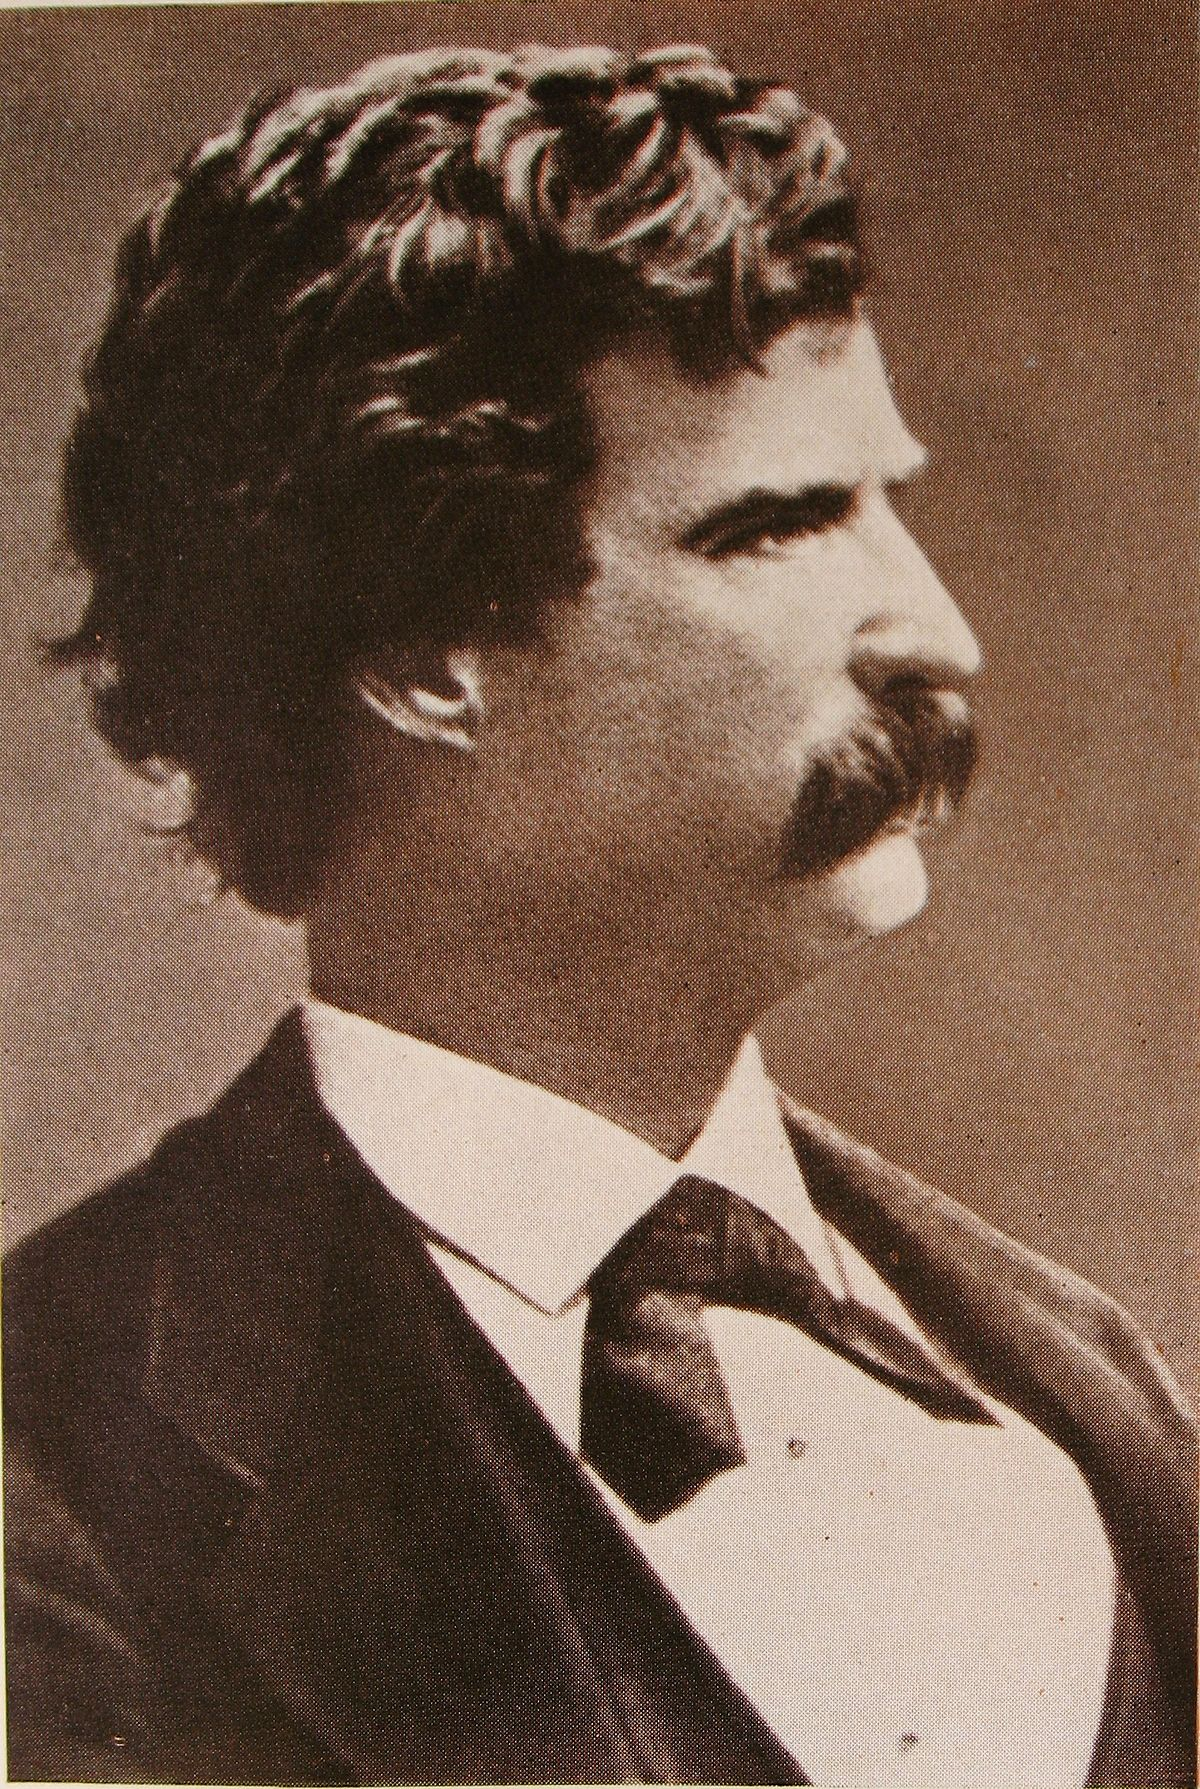 File:Mark Twain young.JPG - Wikimedia Commons